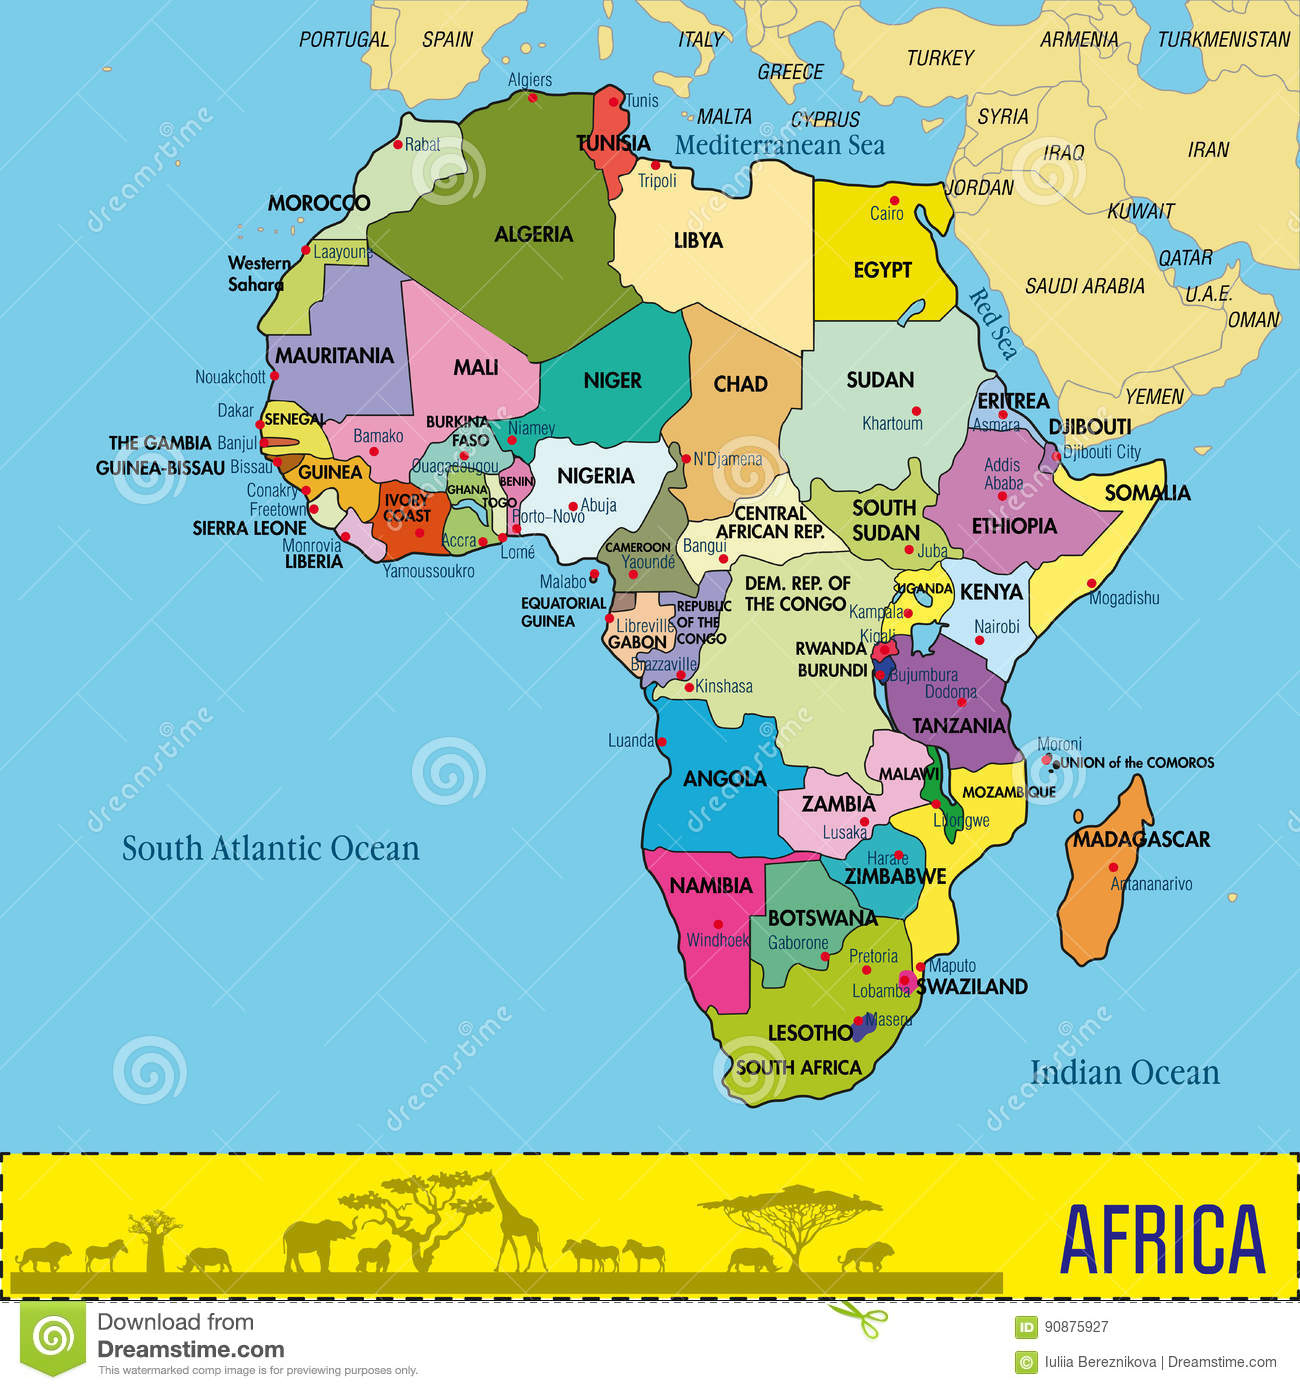 Map Of Africa With All Countries And Their Capitals Stock ... Map Of African Countries on map of the world, map of italy, map of asia, map countries labeled, map poverty in africa 2013, map of africa, south america, world map with countries, map of kenya, map of israel, african people, north america, united states of america, map of egypt, map of australia, africa map countries, south africa countries, map of middle east, map of europe, european countries, map of nigeria, middle east, map of spain, map of indonesia,